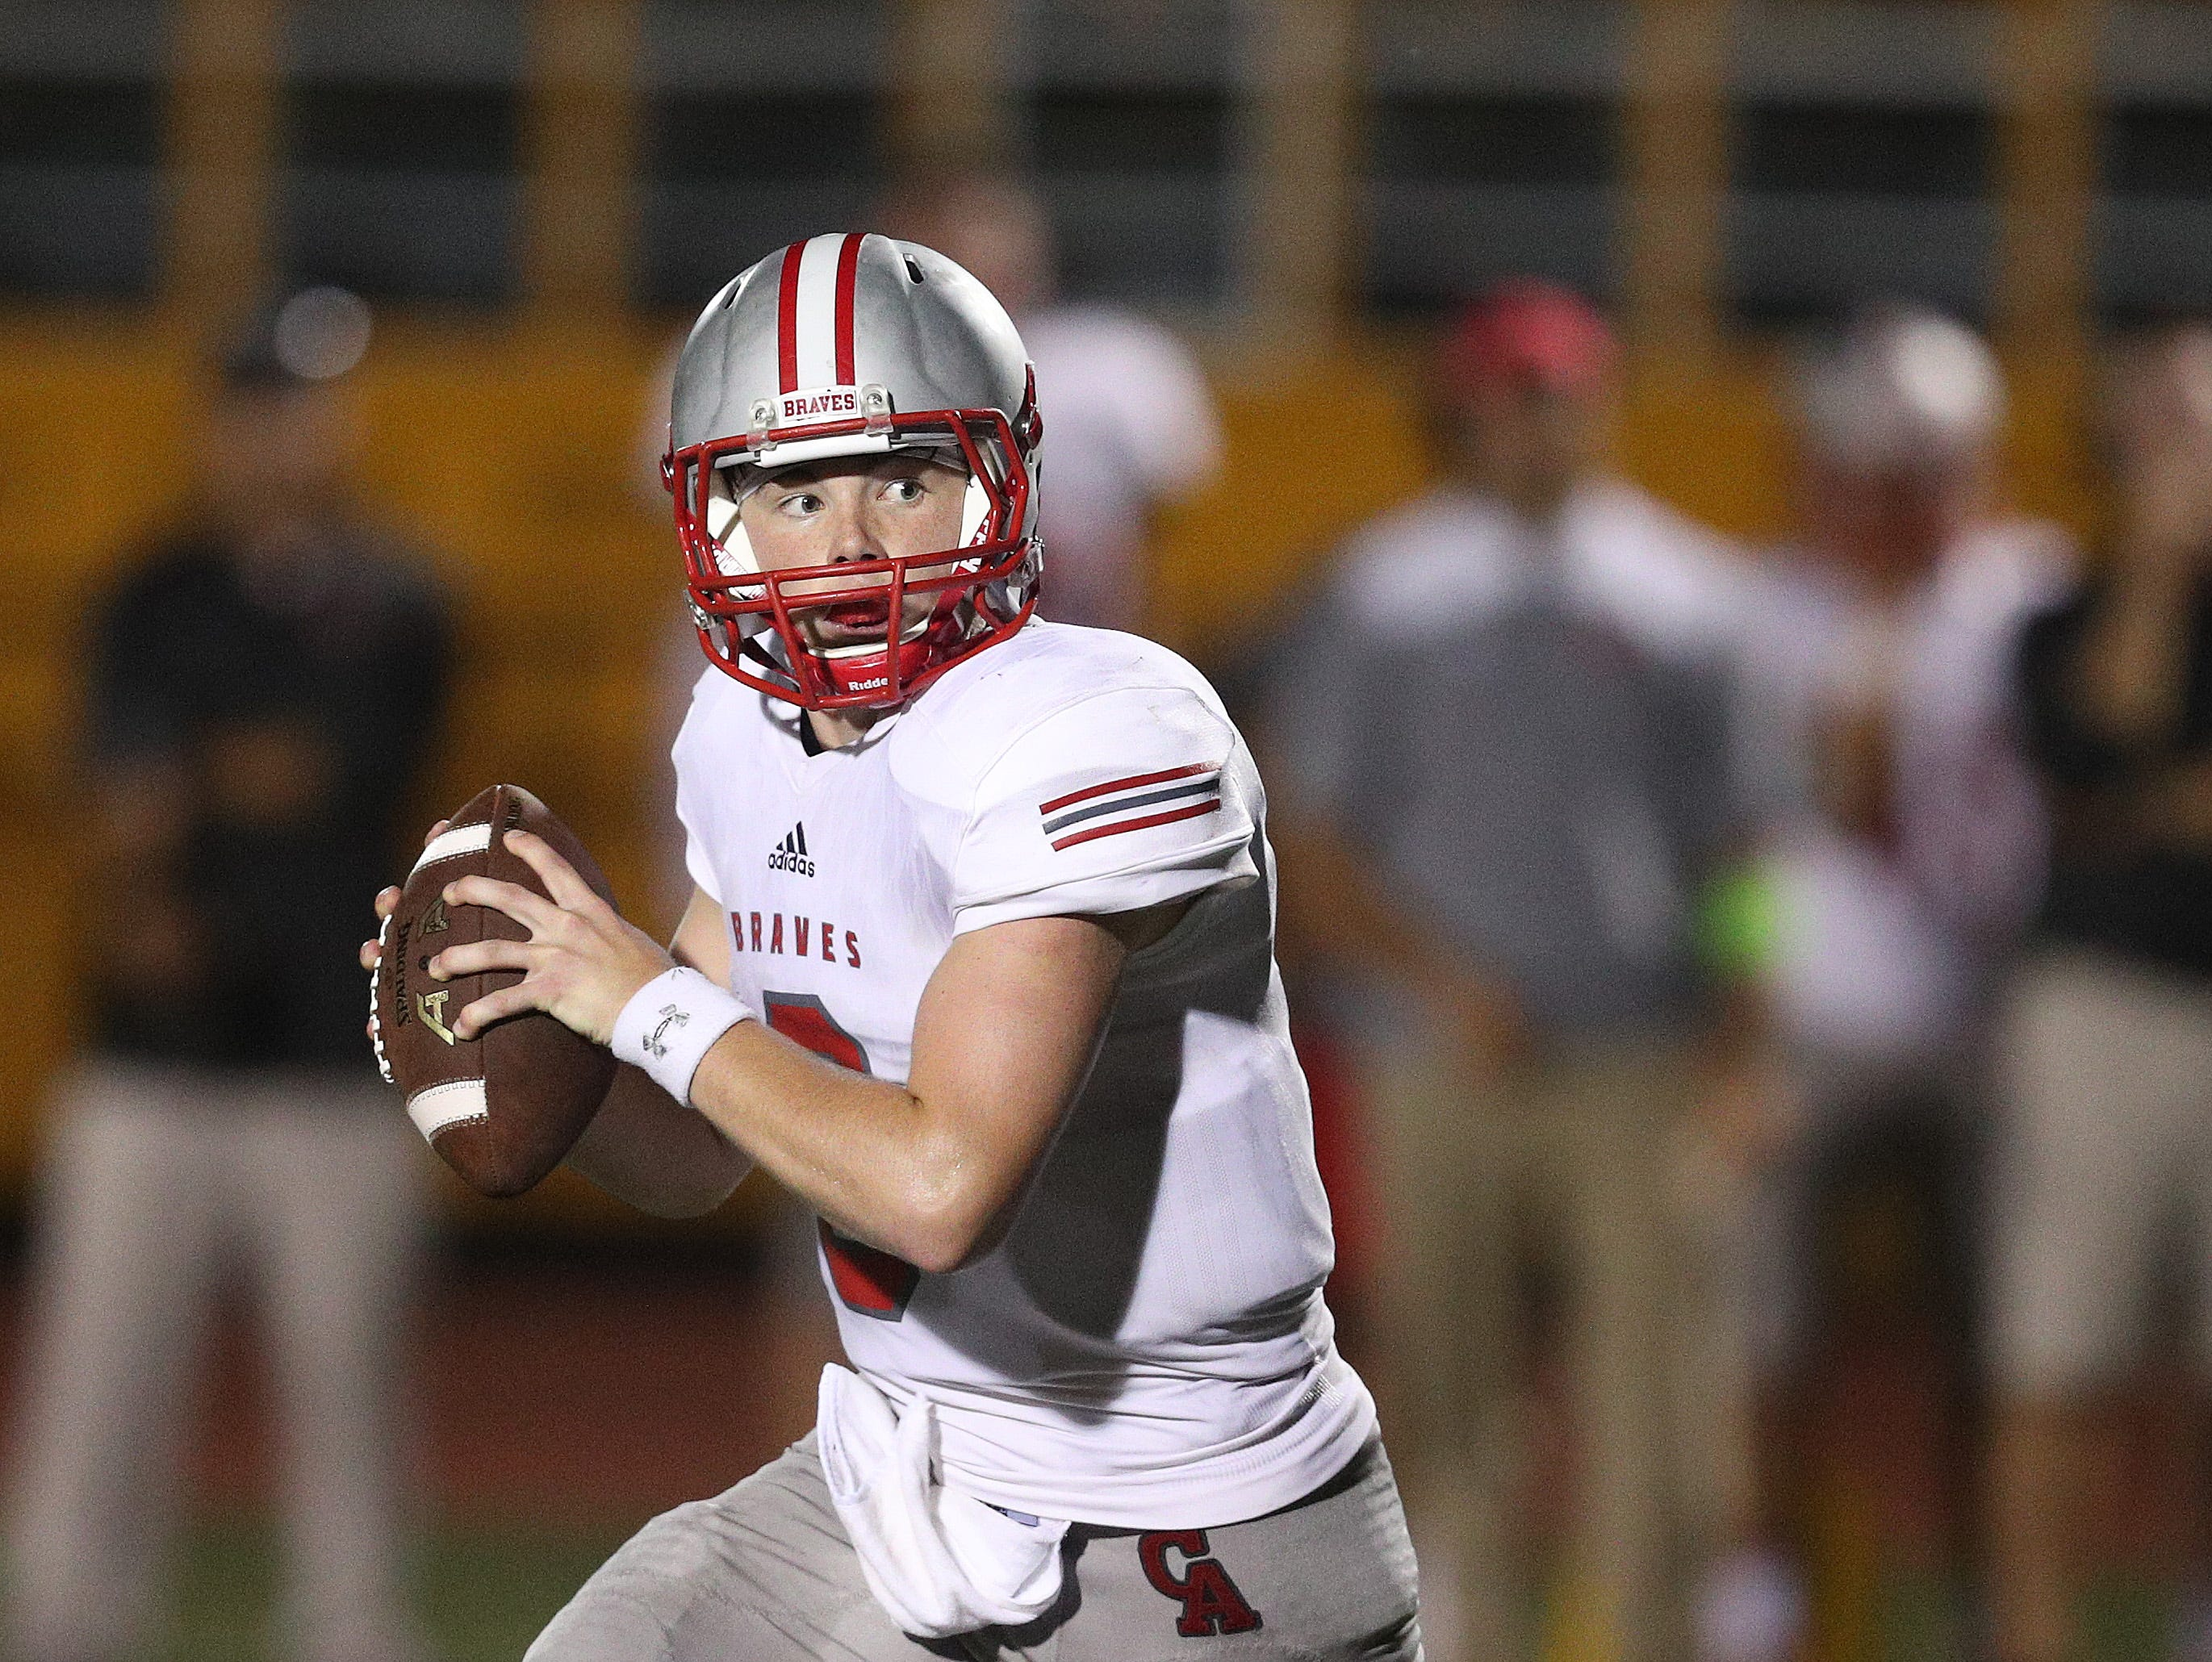 Canandaigua quarterback Jack Johnston rolls to his right looking downfield.